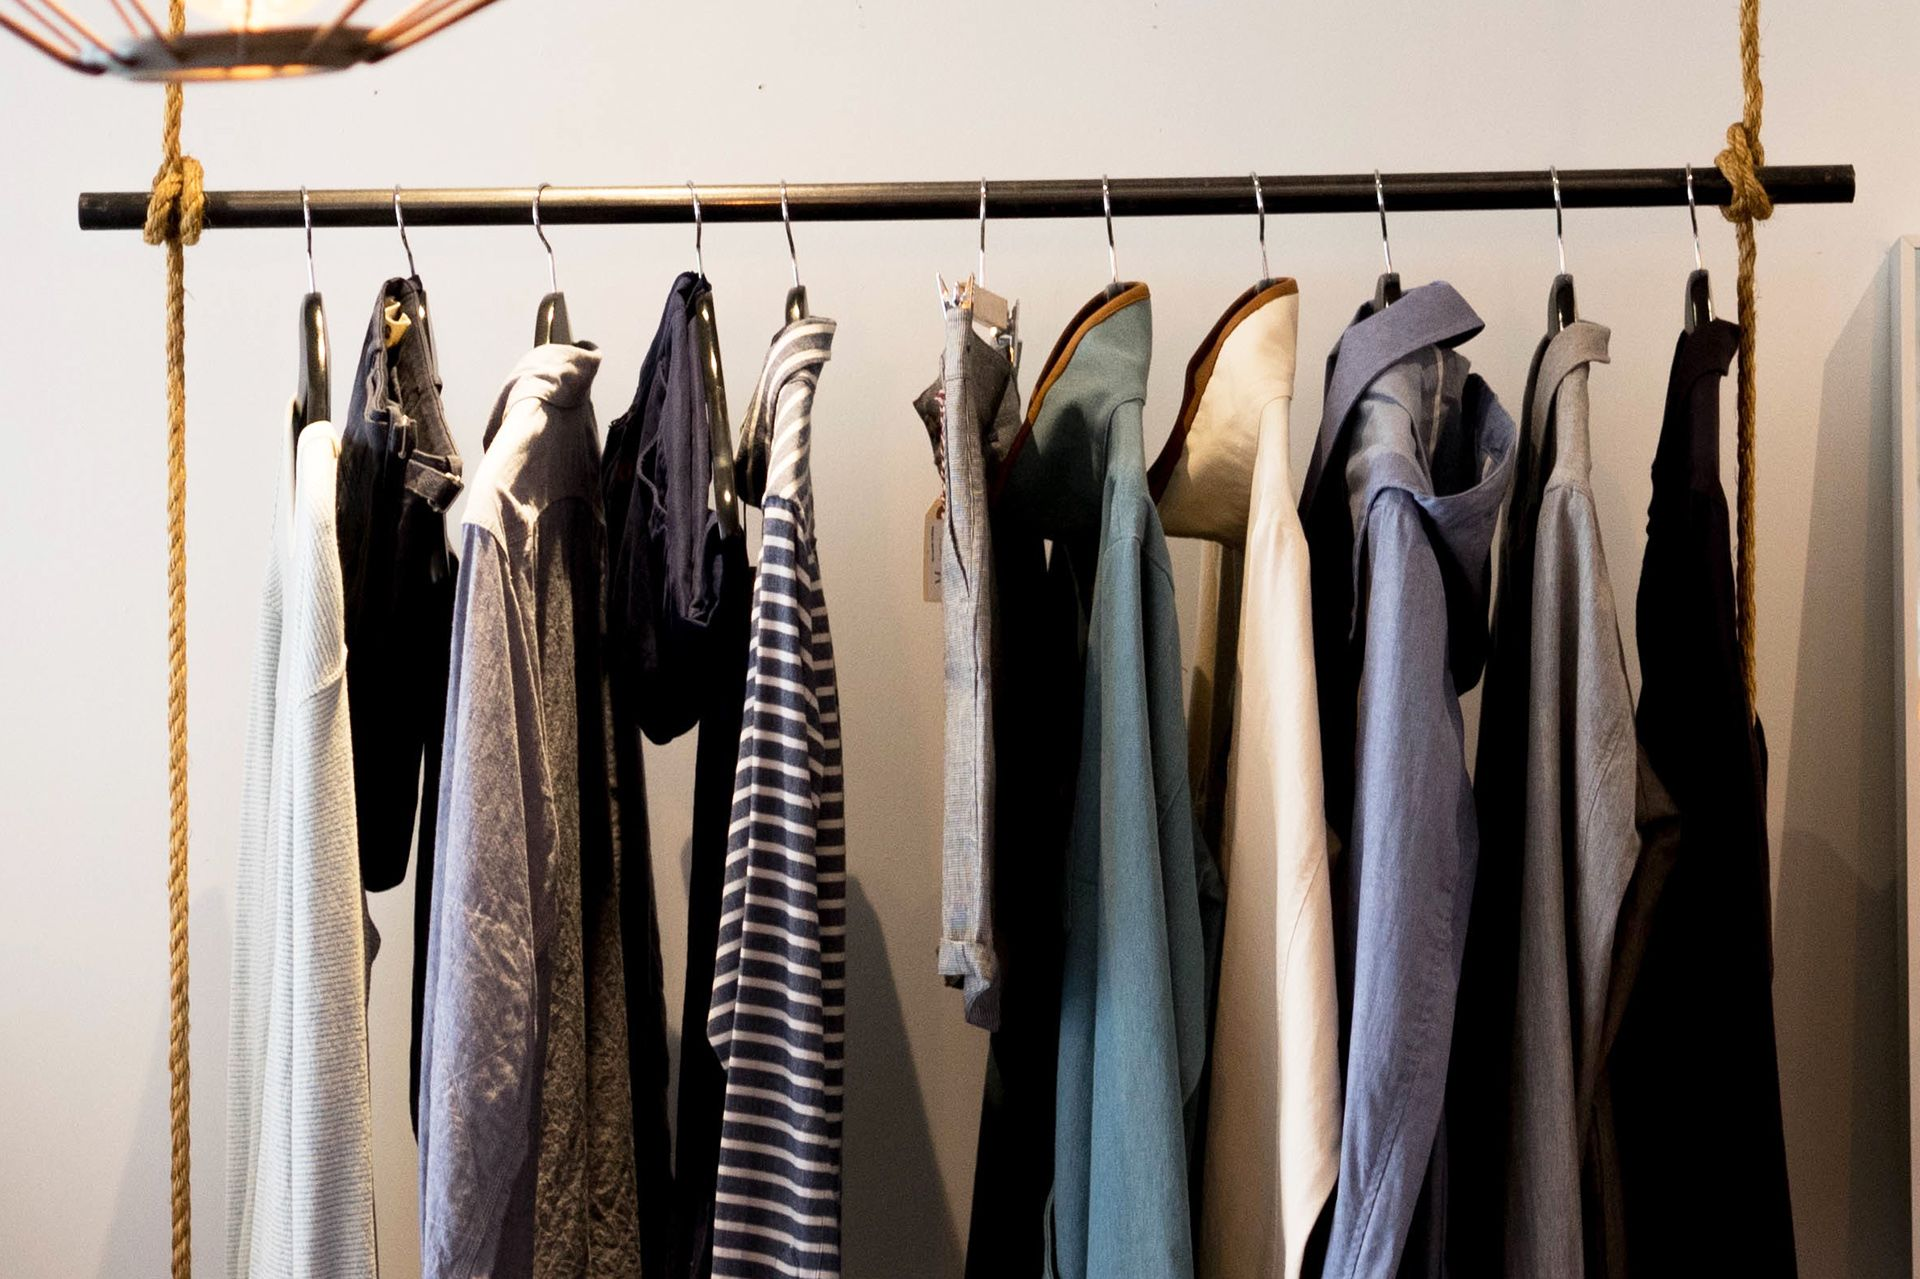 10 Clothes Storage Ideas When You Have No Closet With Images Clothes Storage Without A Closet